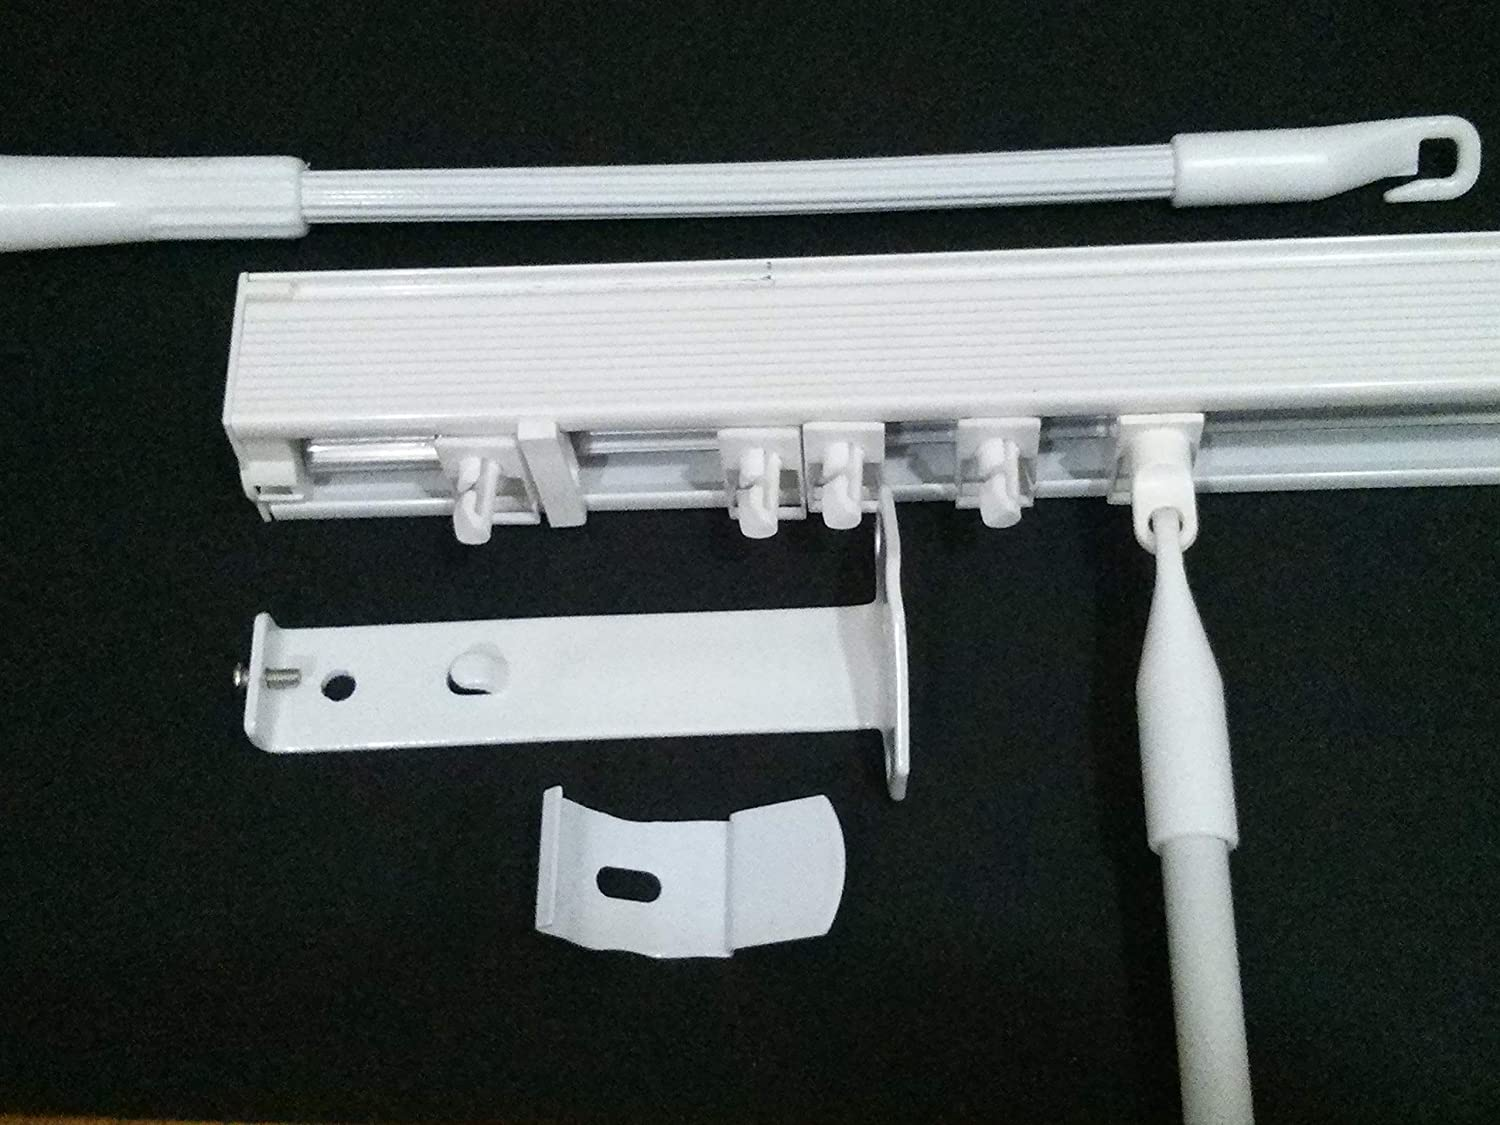 901-1050mm Track Only Made To Measure Slimline Vertical Blind Headrail